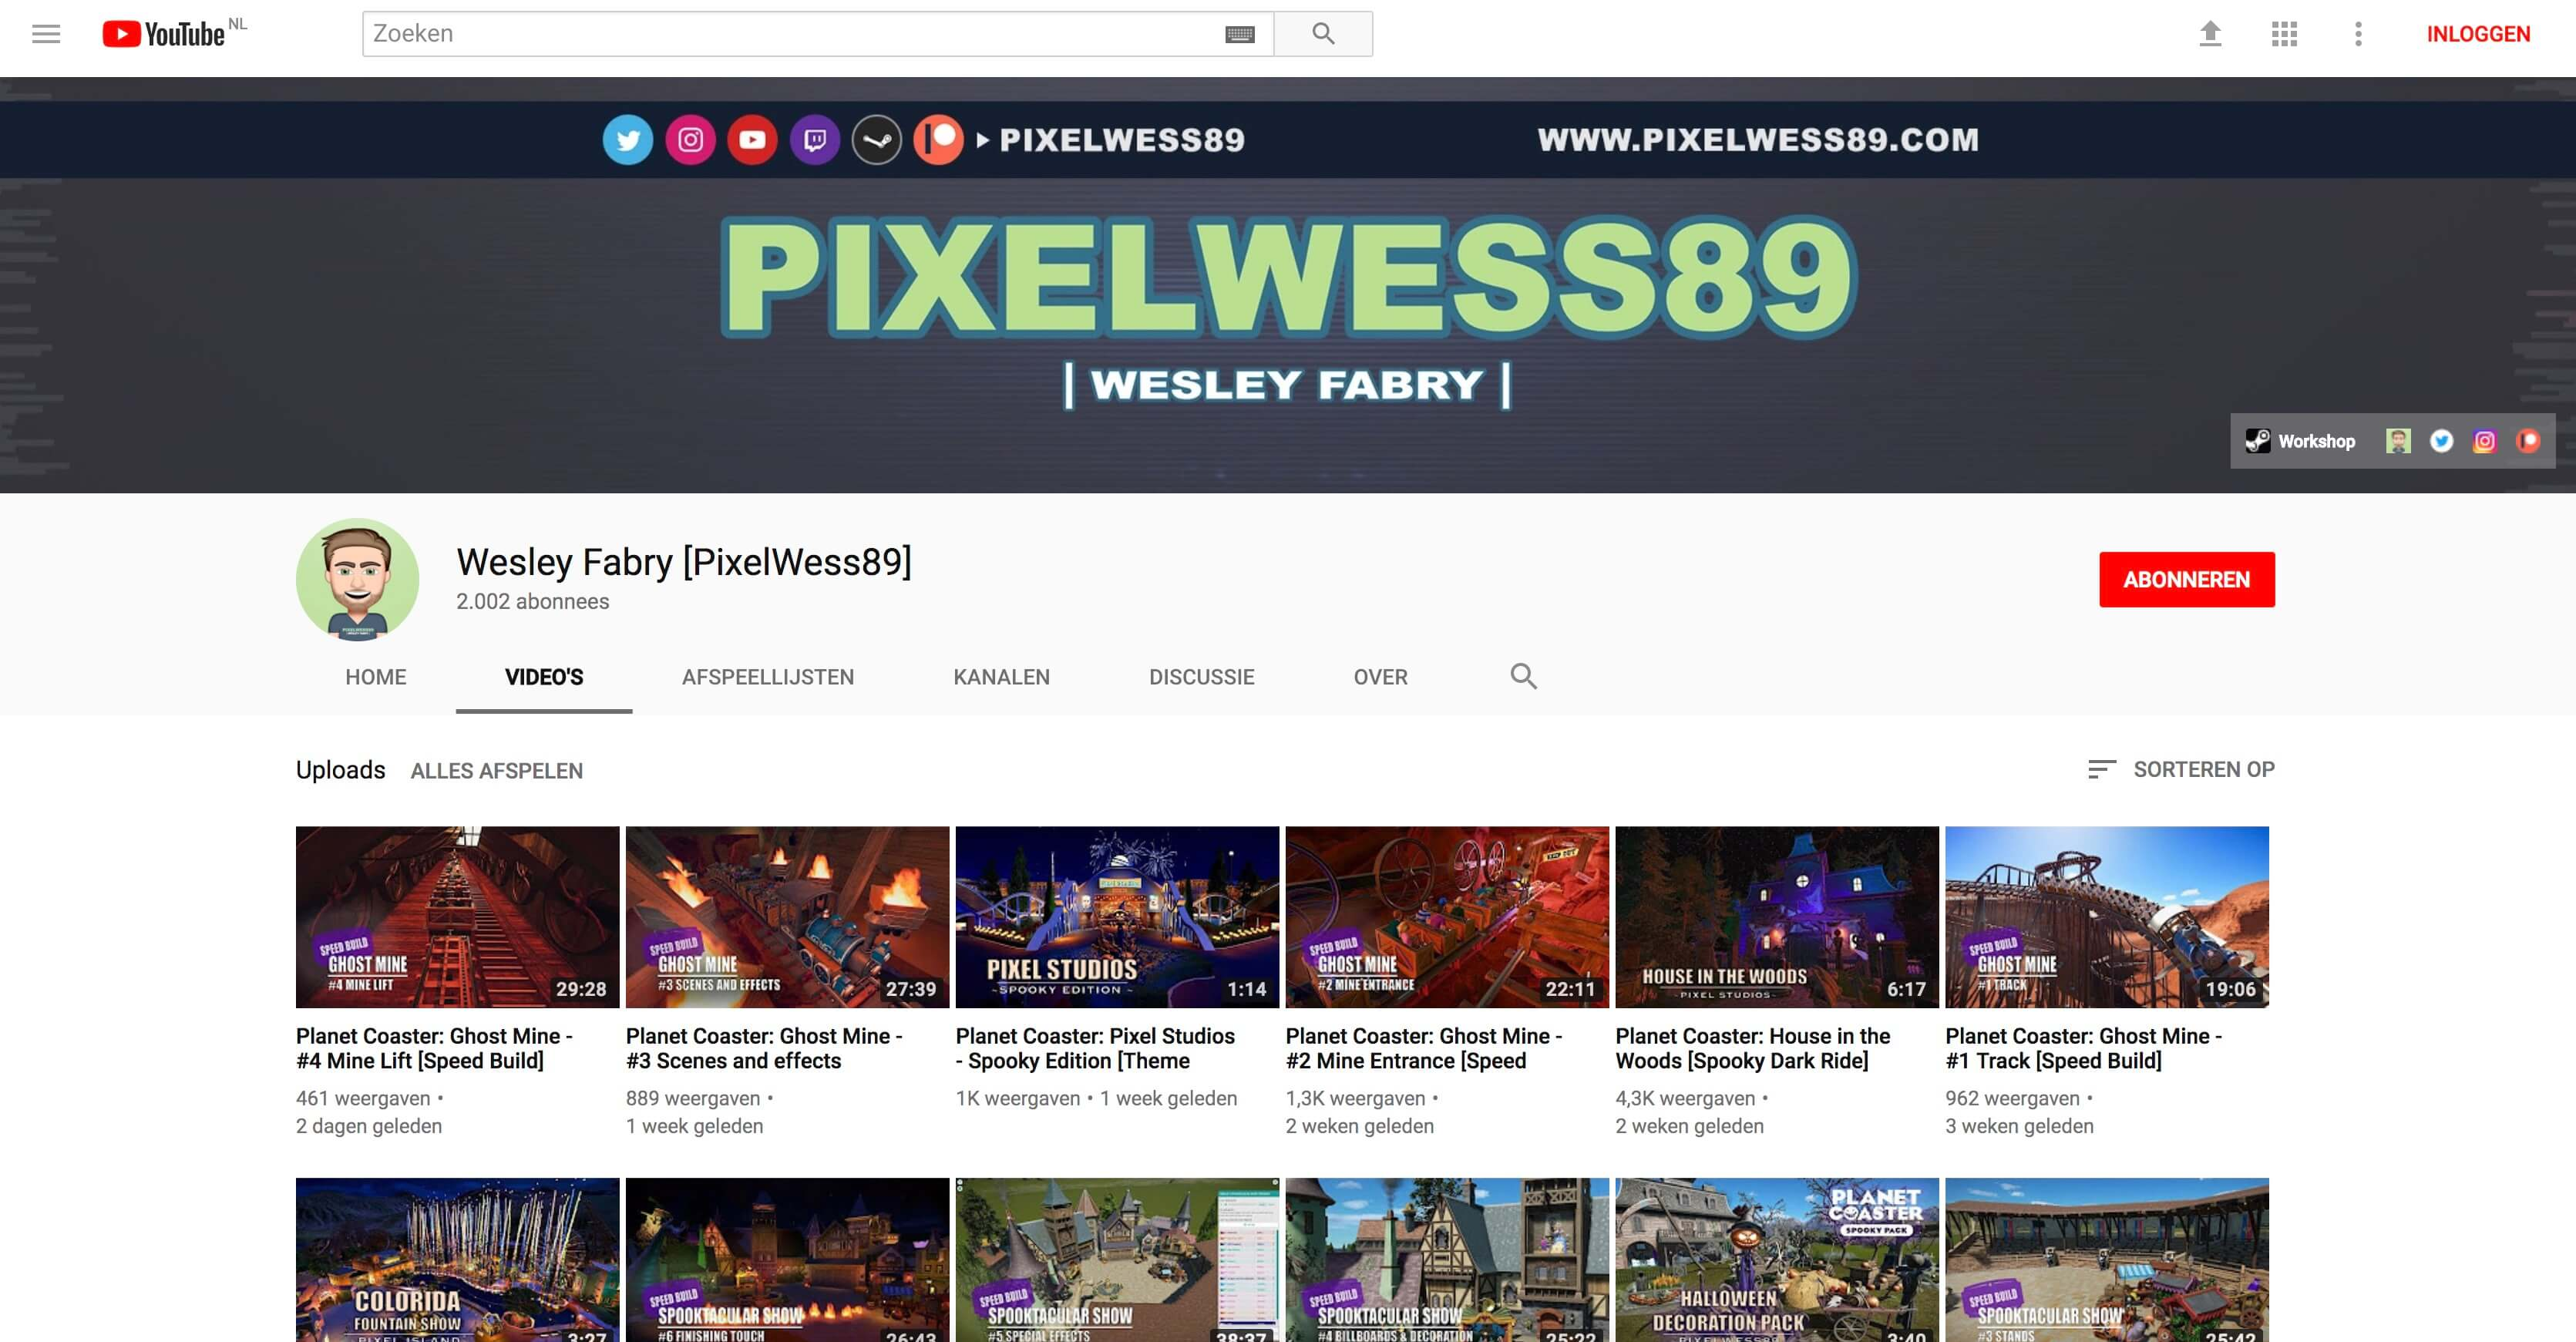 youtube pixelwess89